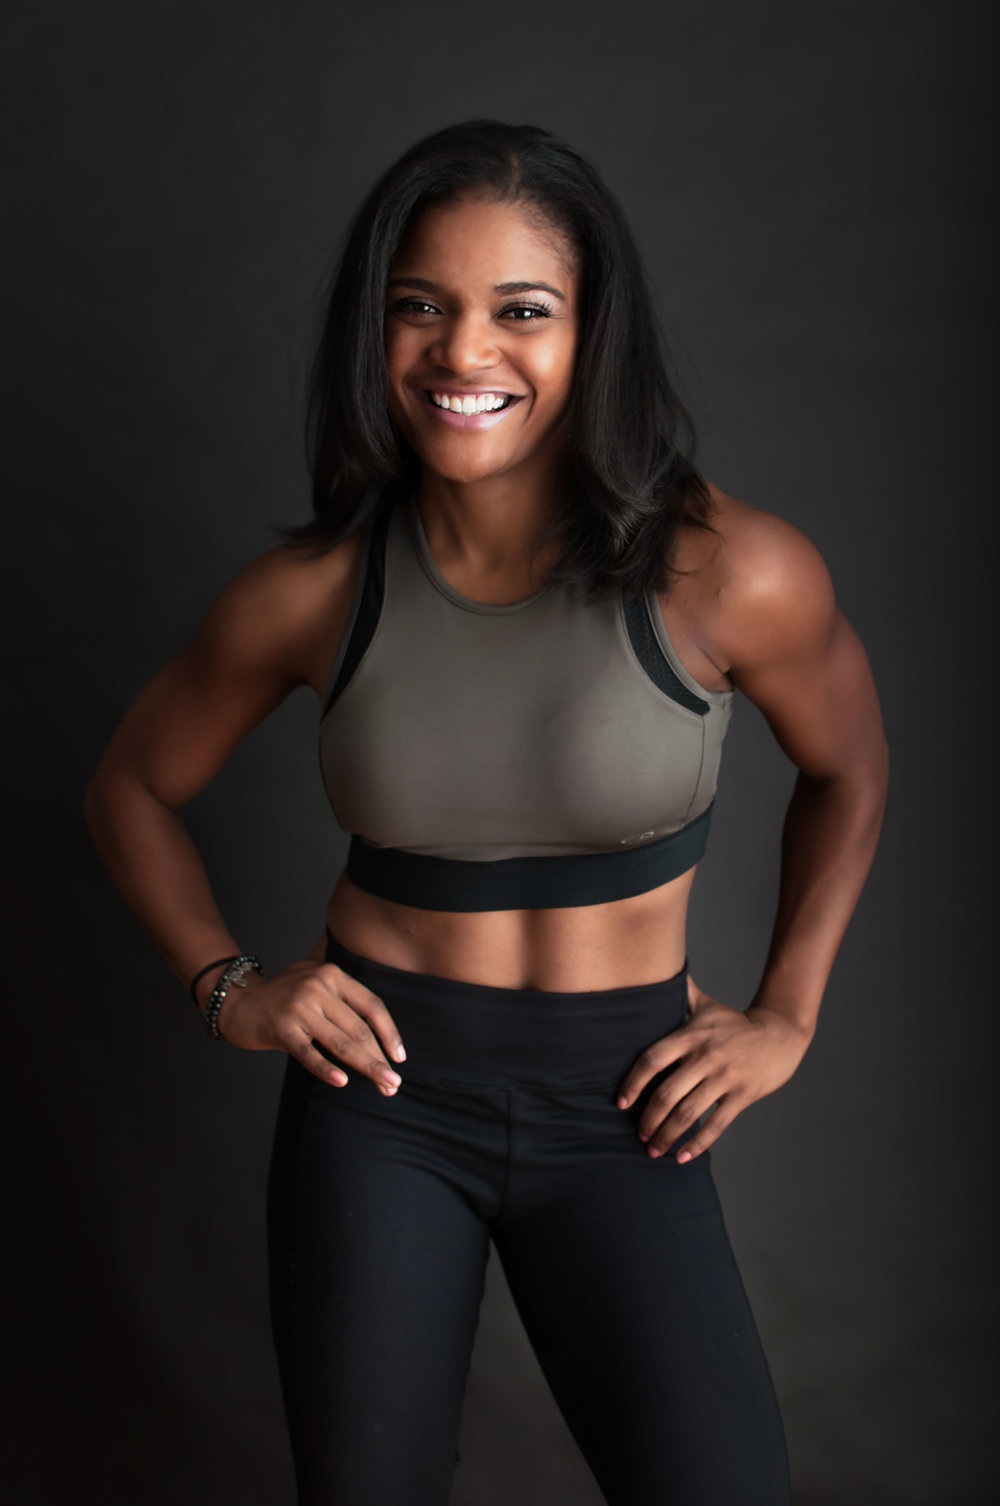 Morgan Martin - Health Coach    Morgan's passion is to empower people through fitness, nutrition, self-expression and mindset. Although she has built her brand as an Herbalife health coach, Morgan wears many hats as an NASM certified group instructor, actor and dancer. After pursuing an entertainment career in LA after college, she realized she needed more.  Finding her passion for health and fitness through working with actor Richard Lawson on a new fitness craze called DanceFitWalk- it was through that project Morgan unleashed her drive to help others transform. She then became a certified group instructor, health coach with Herbalife nutrition and has started a movement of others that are not only transforming themselves but teaching them to unlock that same power within others. She currently resides in Chicago, IL where she has a wellness center called  The LAB . It's a place for people to LIVE a healthy lifestyle and BELIEVE that anything is possible with hard work and dedication. She is working with a group of phenomenal people that have lost hundreds of pounds, transforming their lives, and gaining confidence through health and wellness.  It is her mission to help others create the Best version of themselves